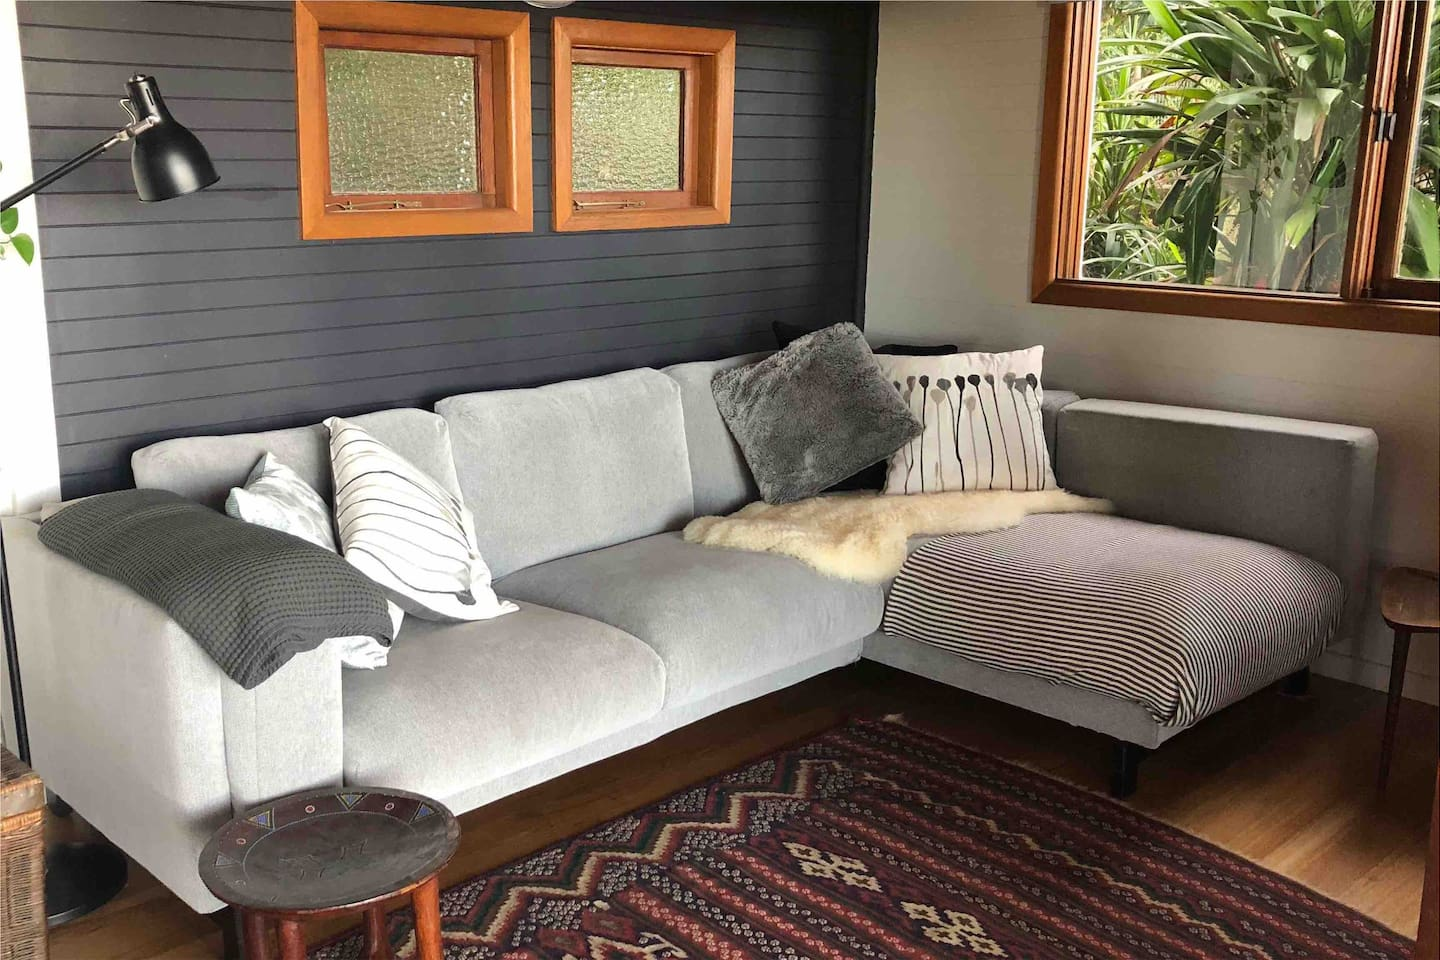 There's plenty of room for 2 on this modular couch. Enjoy the view, snuggle up under the throw rugs and read a book or catch up on some movies.